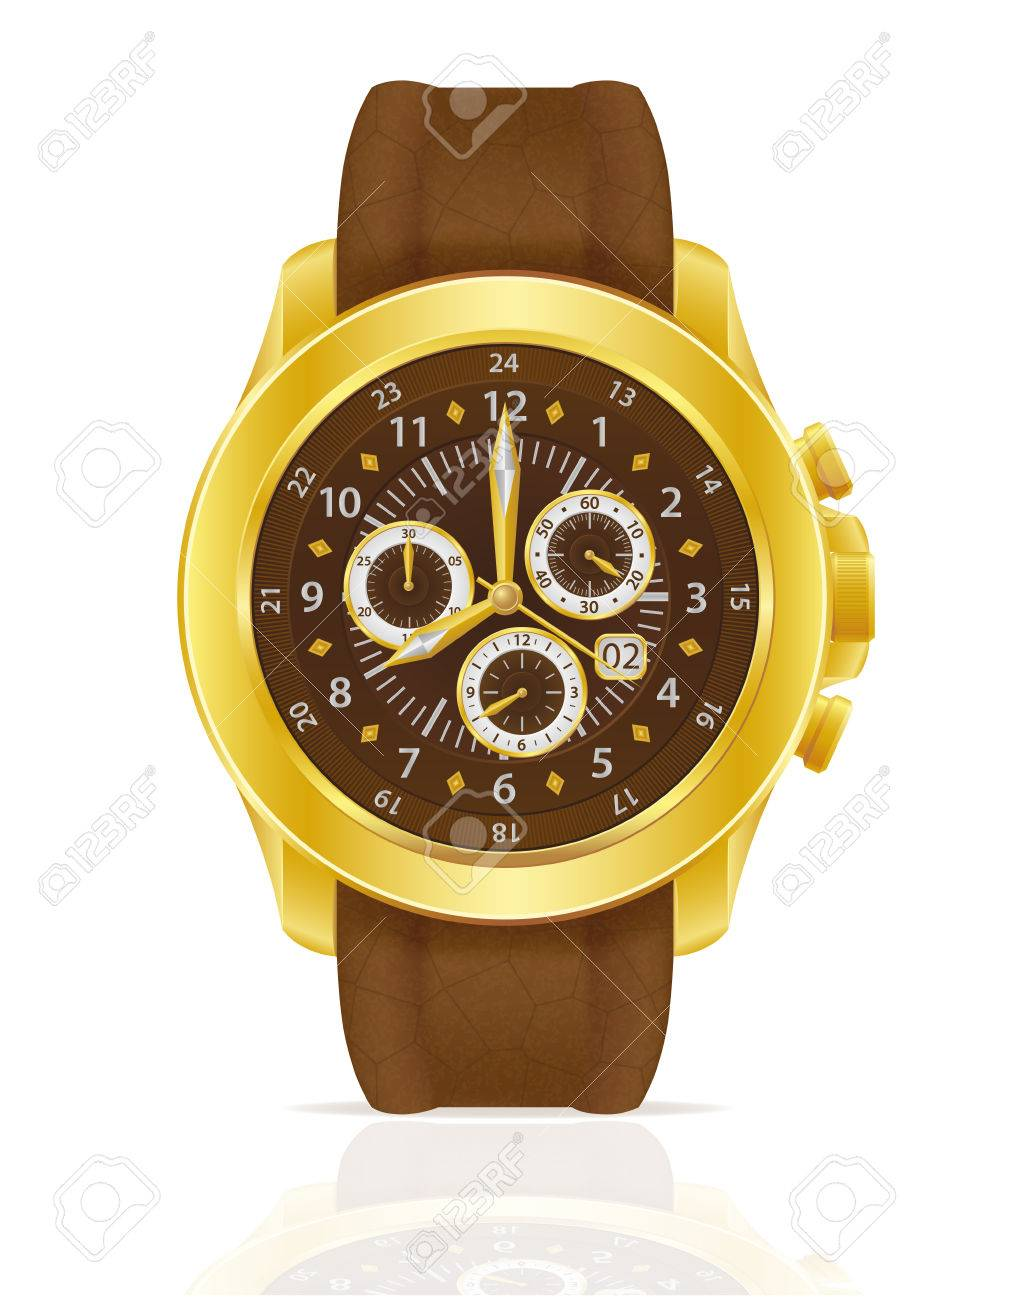 Lederband Für Uhr Stock Photo